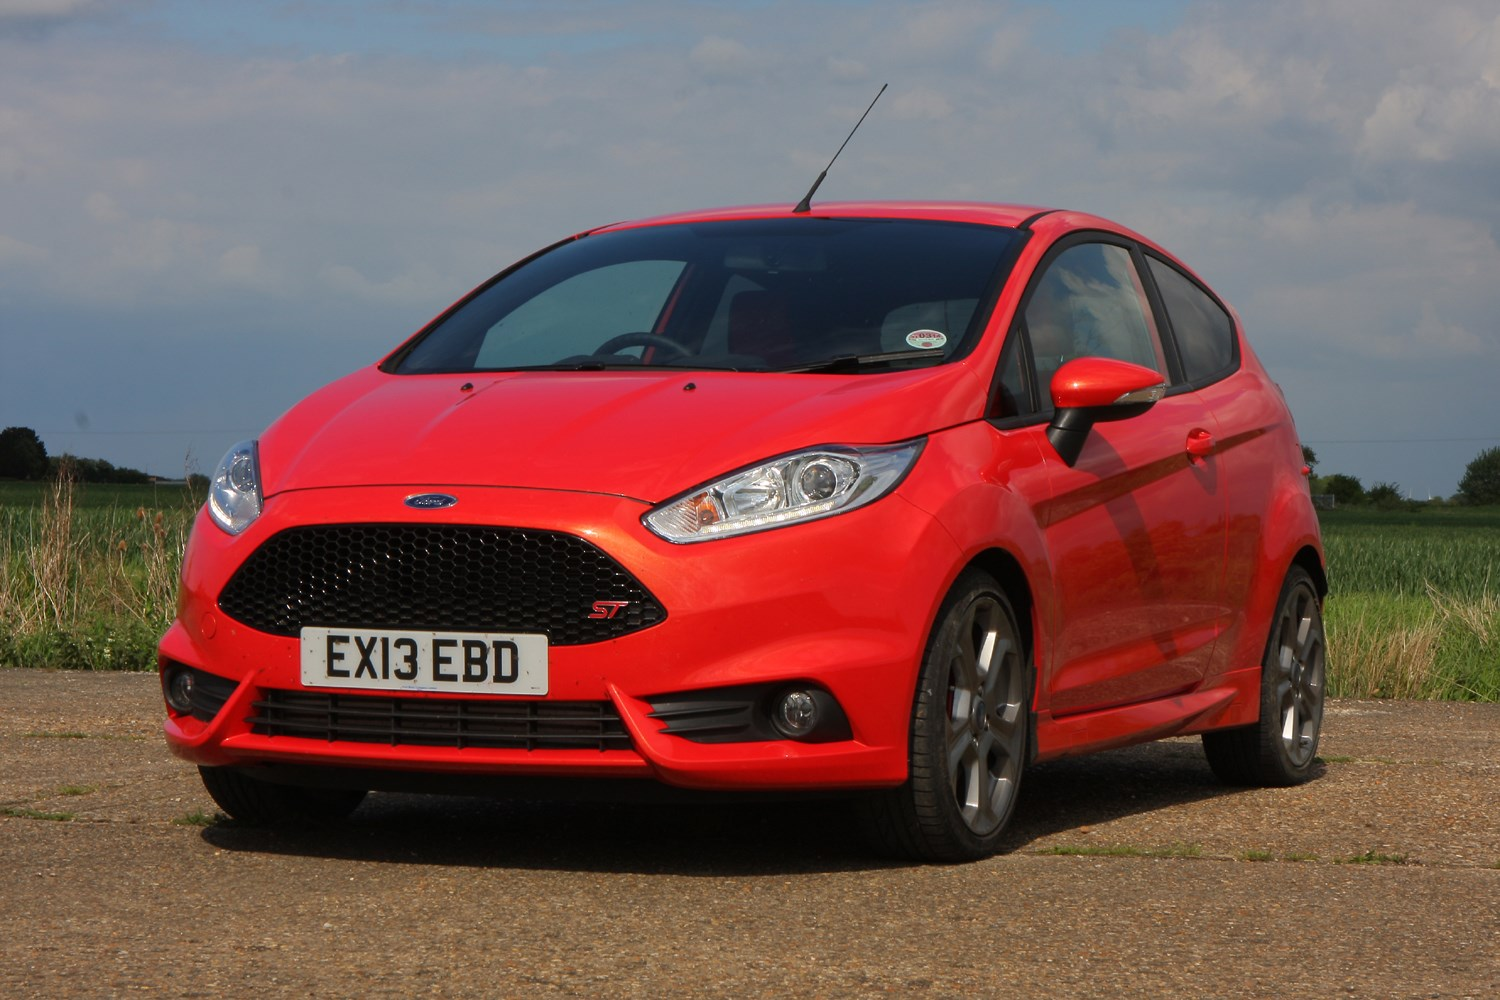 ford fiesta st review 2012 2017 parkers. Black Bedroom Furniture Sets. Home Design Ideas